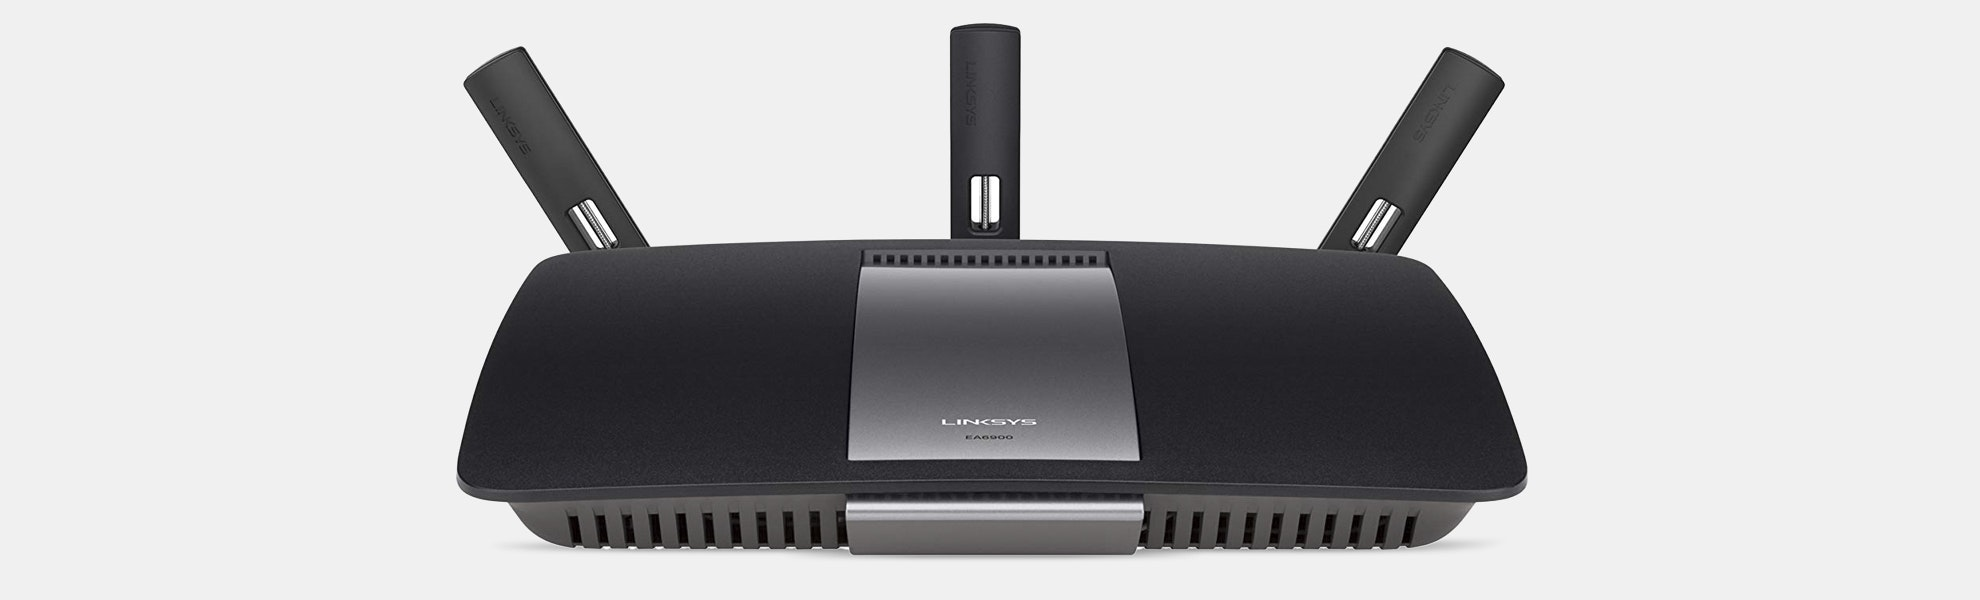 Linksys EA6900 AC1900 Smart Wi-Fi Dual-Band Router